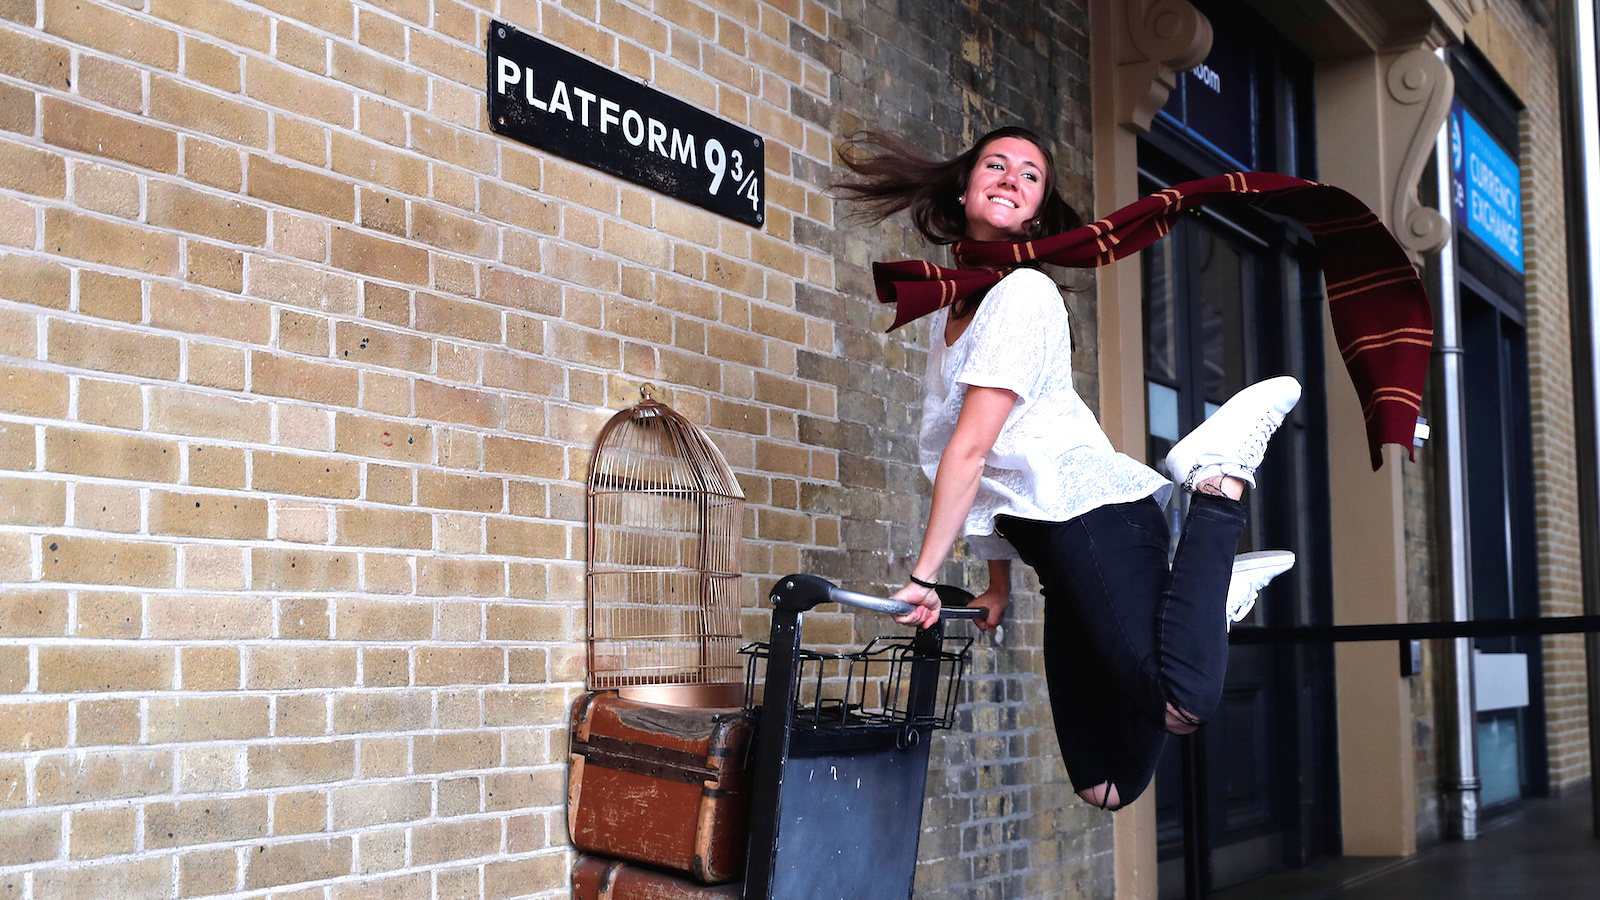 A woman poses for a photograph with the Harry Potter trolley at Kings Cross Station, in London, Britain June 26, 2017. The first Harry Potter book, 'Harry Potter and the Philosopher's Stone' was first published 20 years ago.  REUTERS/Eddie Keogh - RTS18OOD